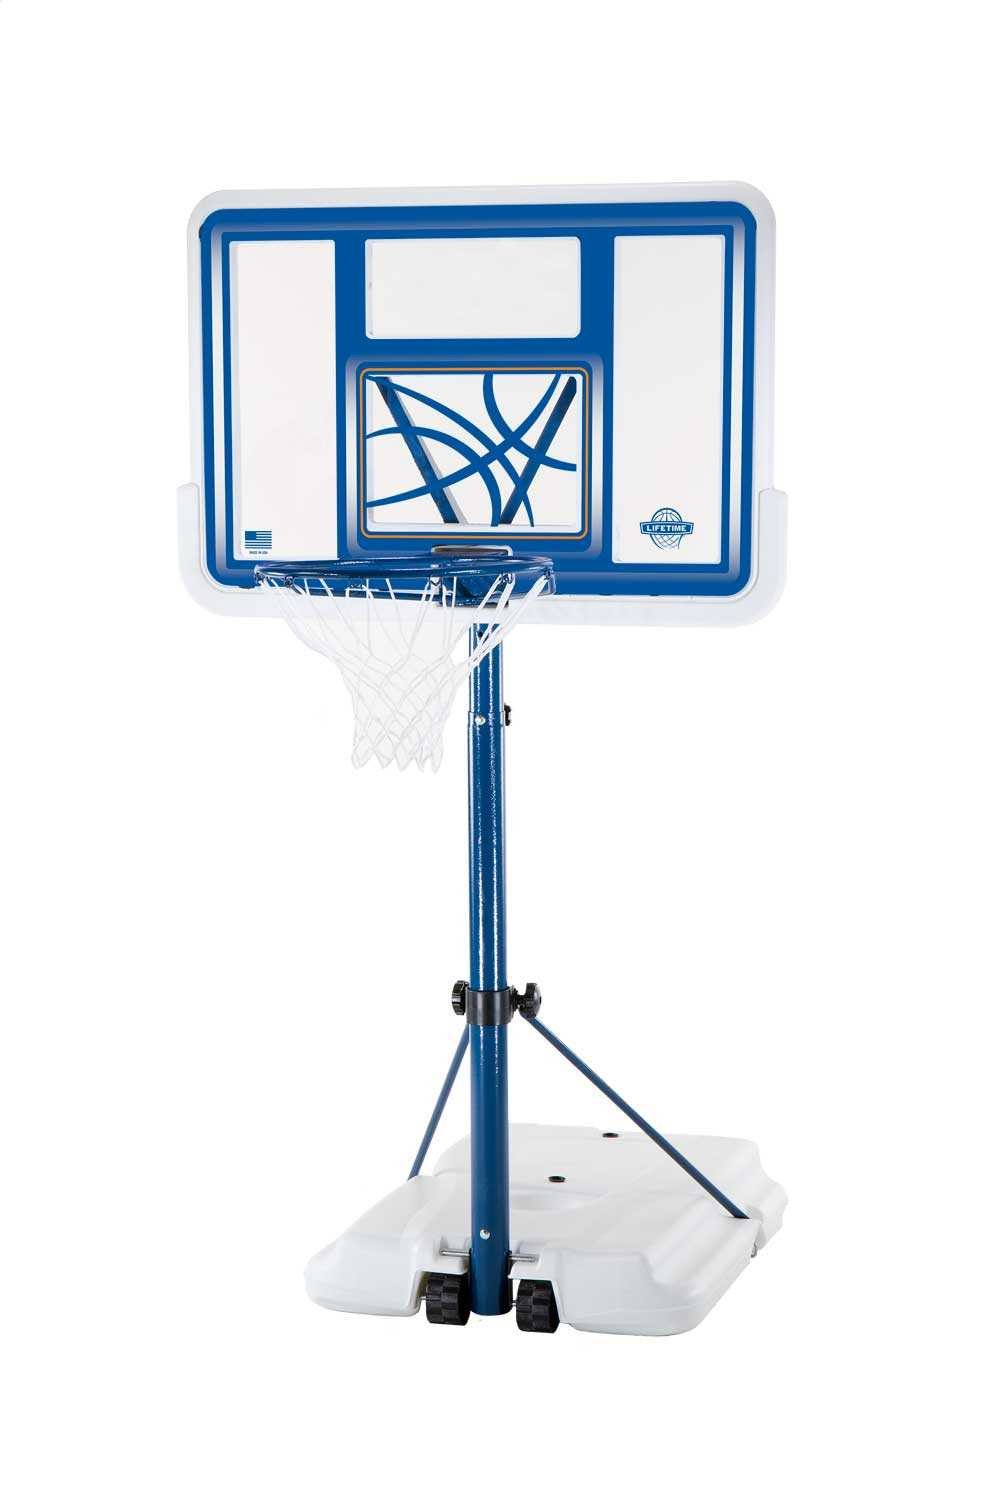 Amazon.com : Lifetime 1306 Pool Side Height Adjustable Portable Basketball  System, 44 Inch Backboard : Lifetime Poolside Basketball : Sports U0026 Outdoors